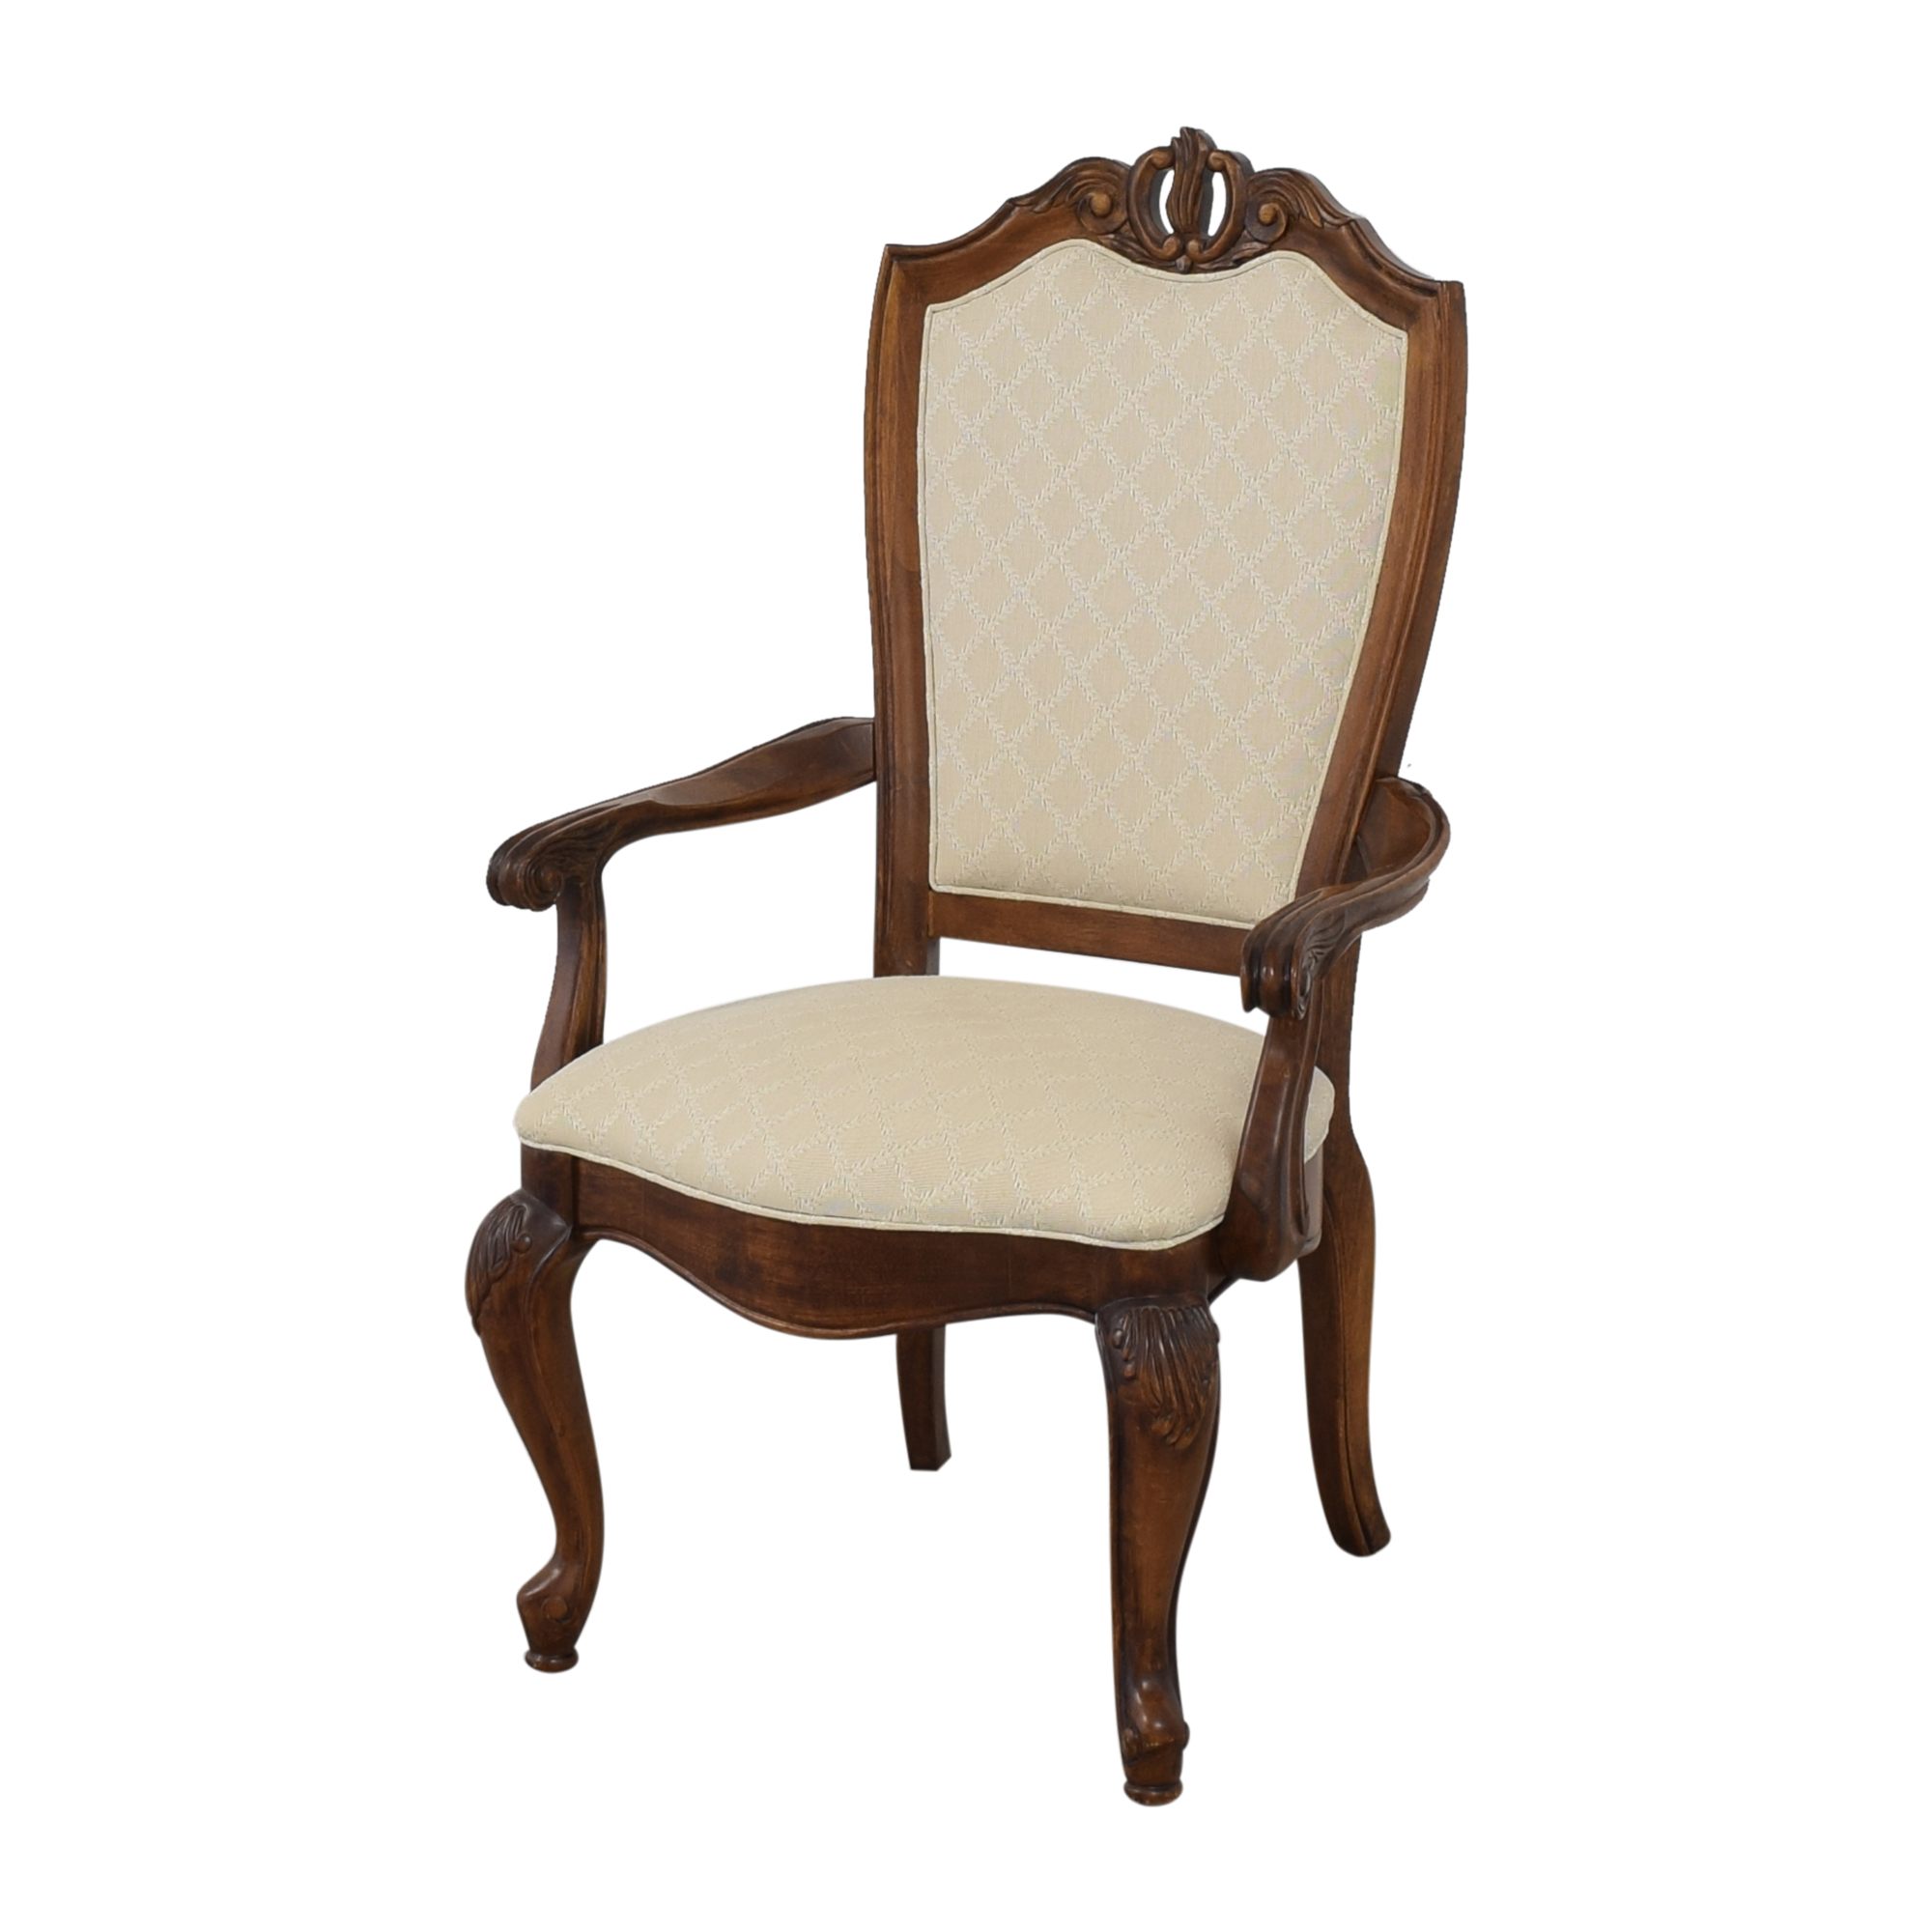 Bob Mackie for American Drew Dining Chairs / Chairs